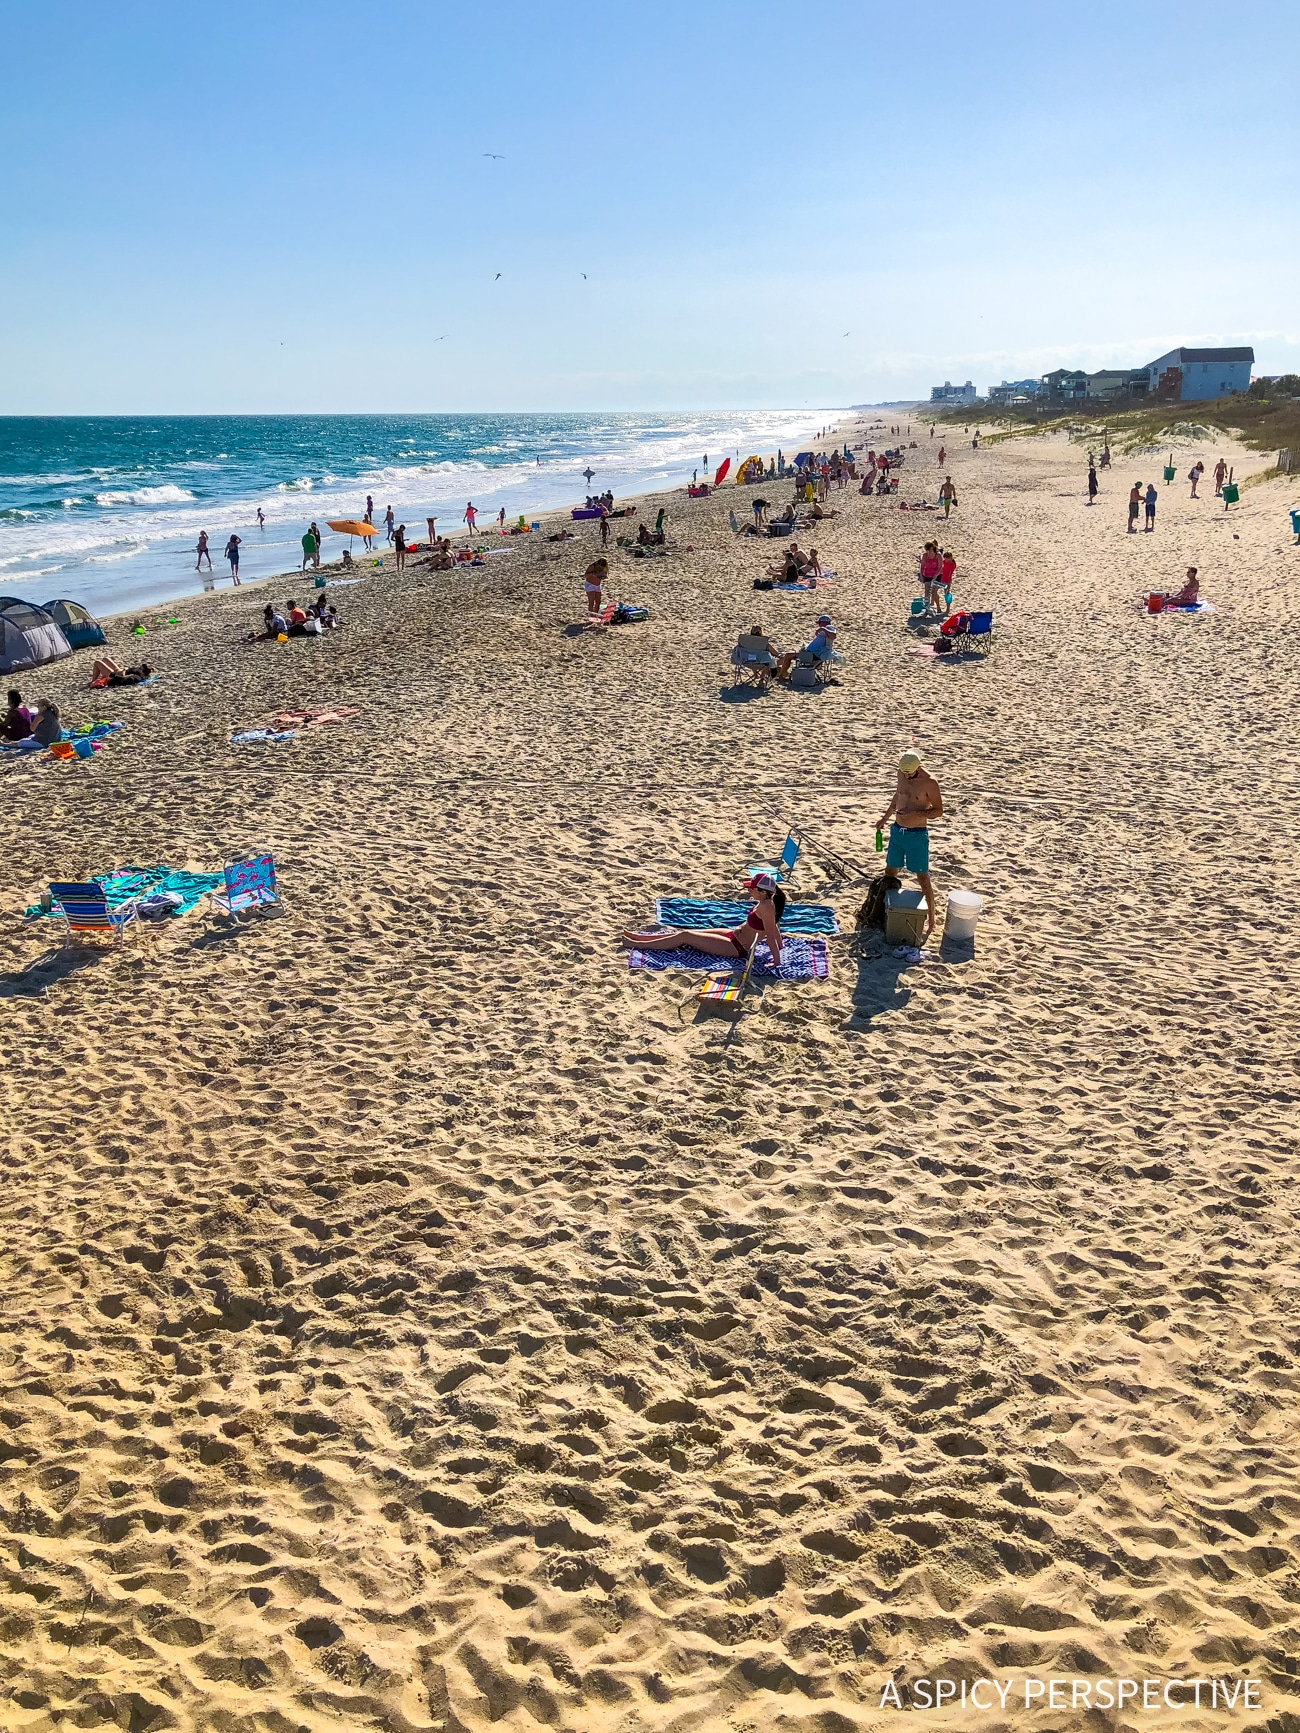 Beaches - Why You Should Visit The Crystal Coast Outer Banks NC (Emerald Isle Vacation Travel Tips!)